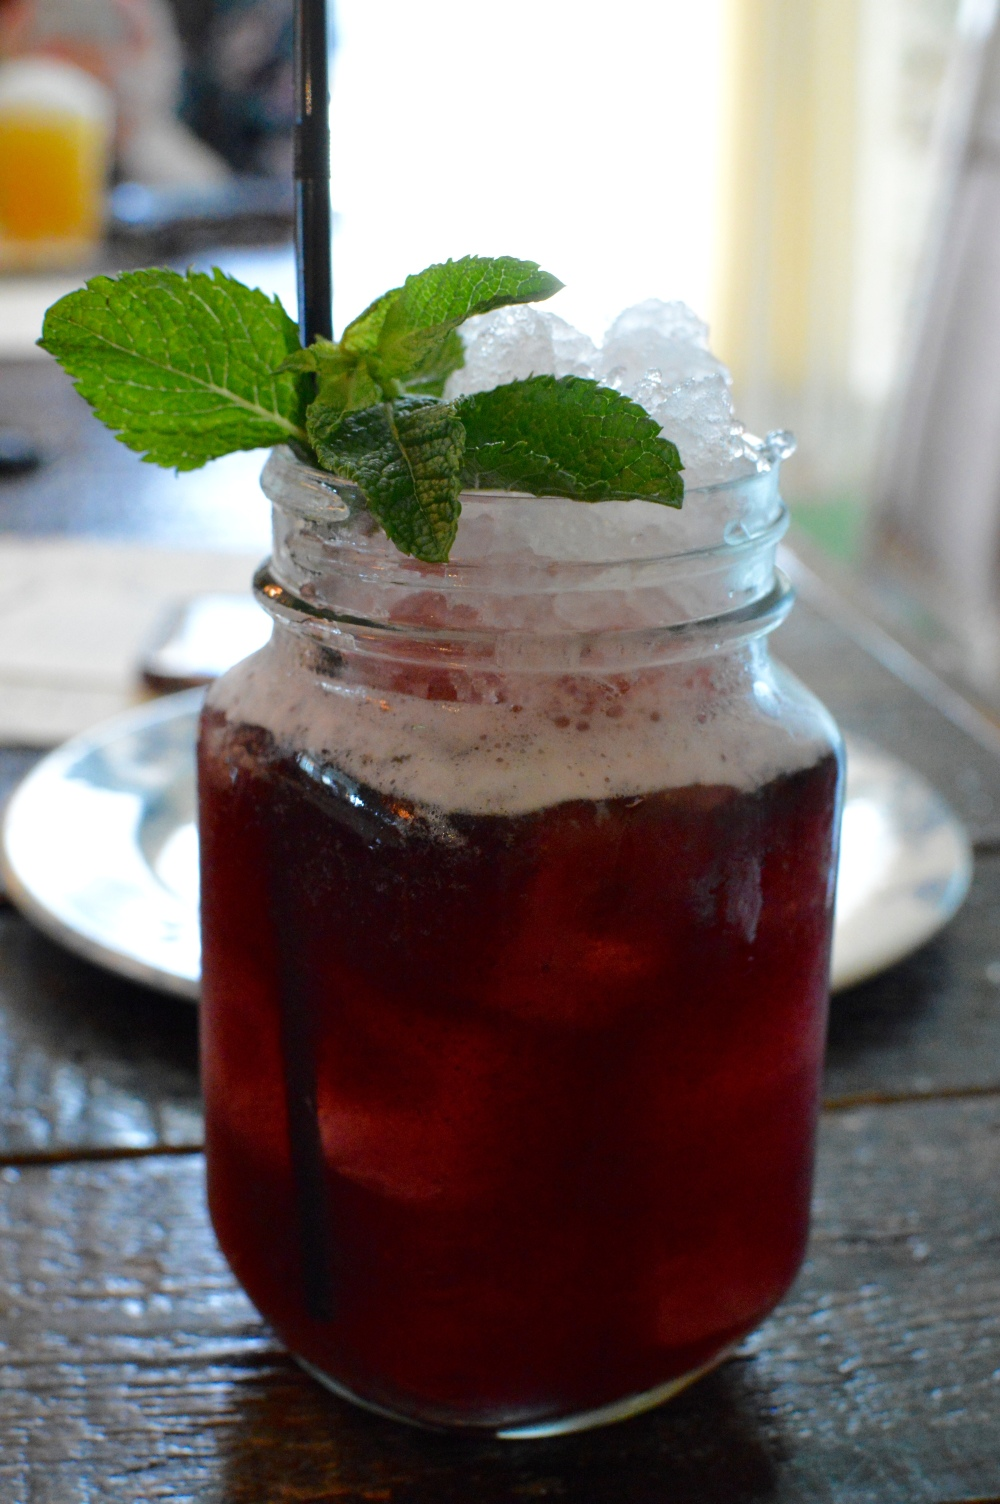 Berry Good Times - non-alcoholic cocktail at The Botanist